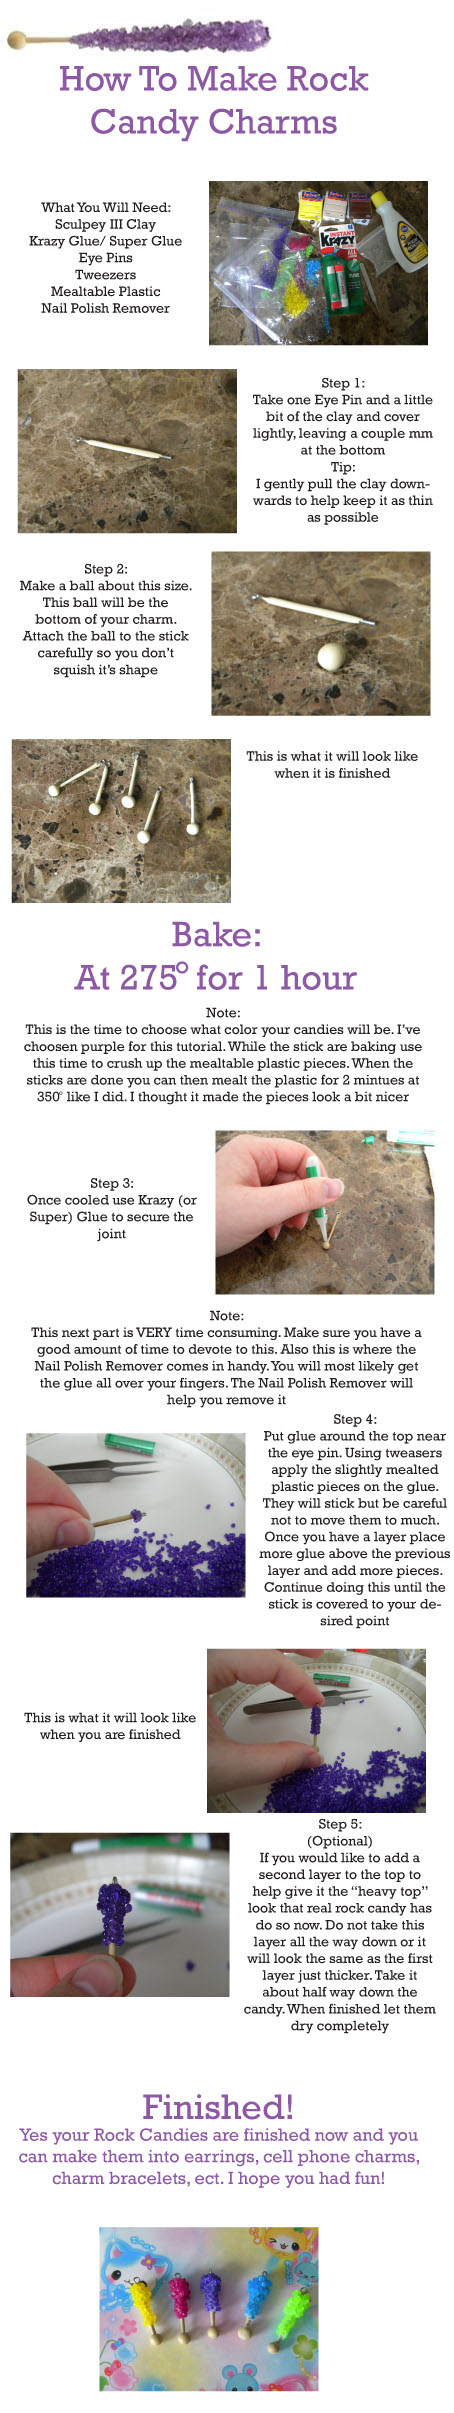 Rock Candy Tutorial by Demi-Plum